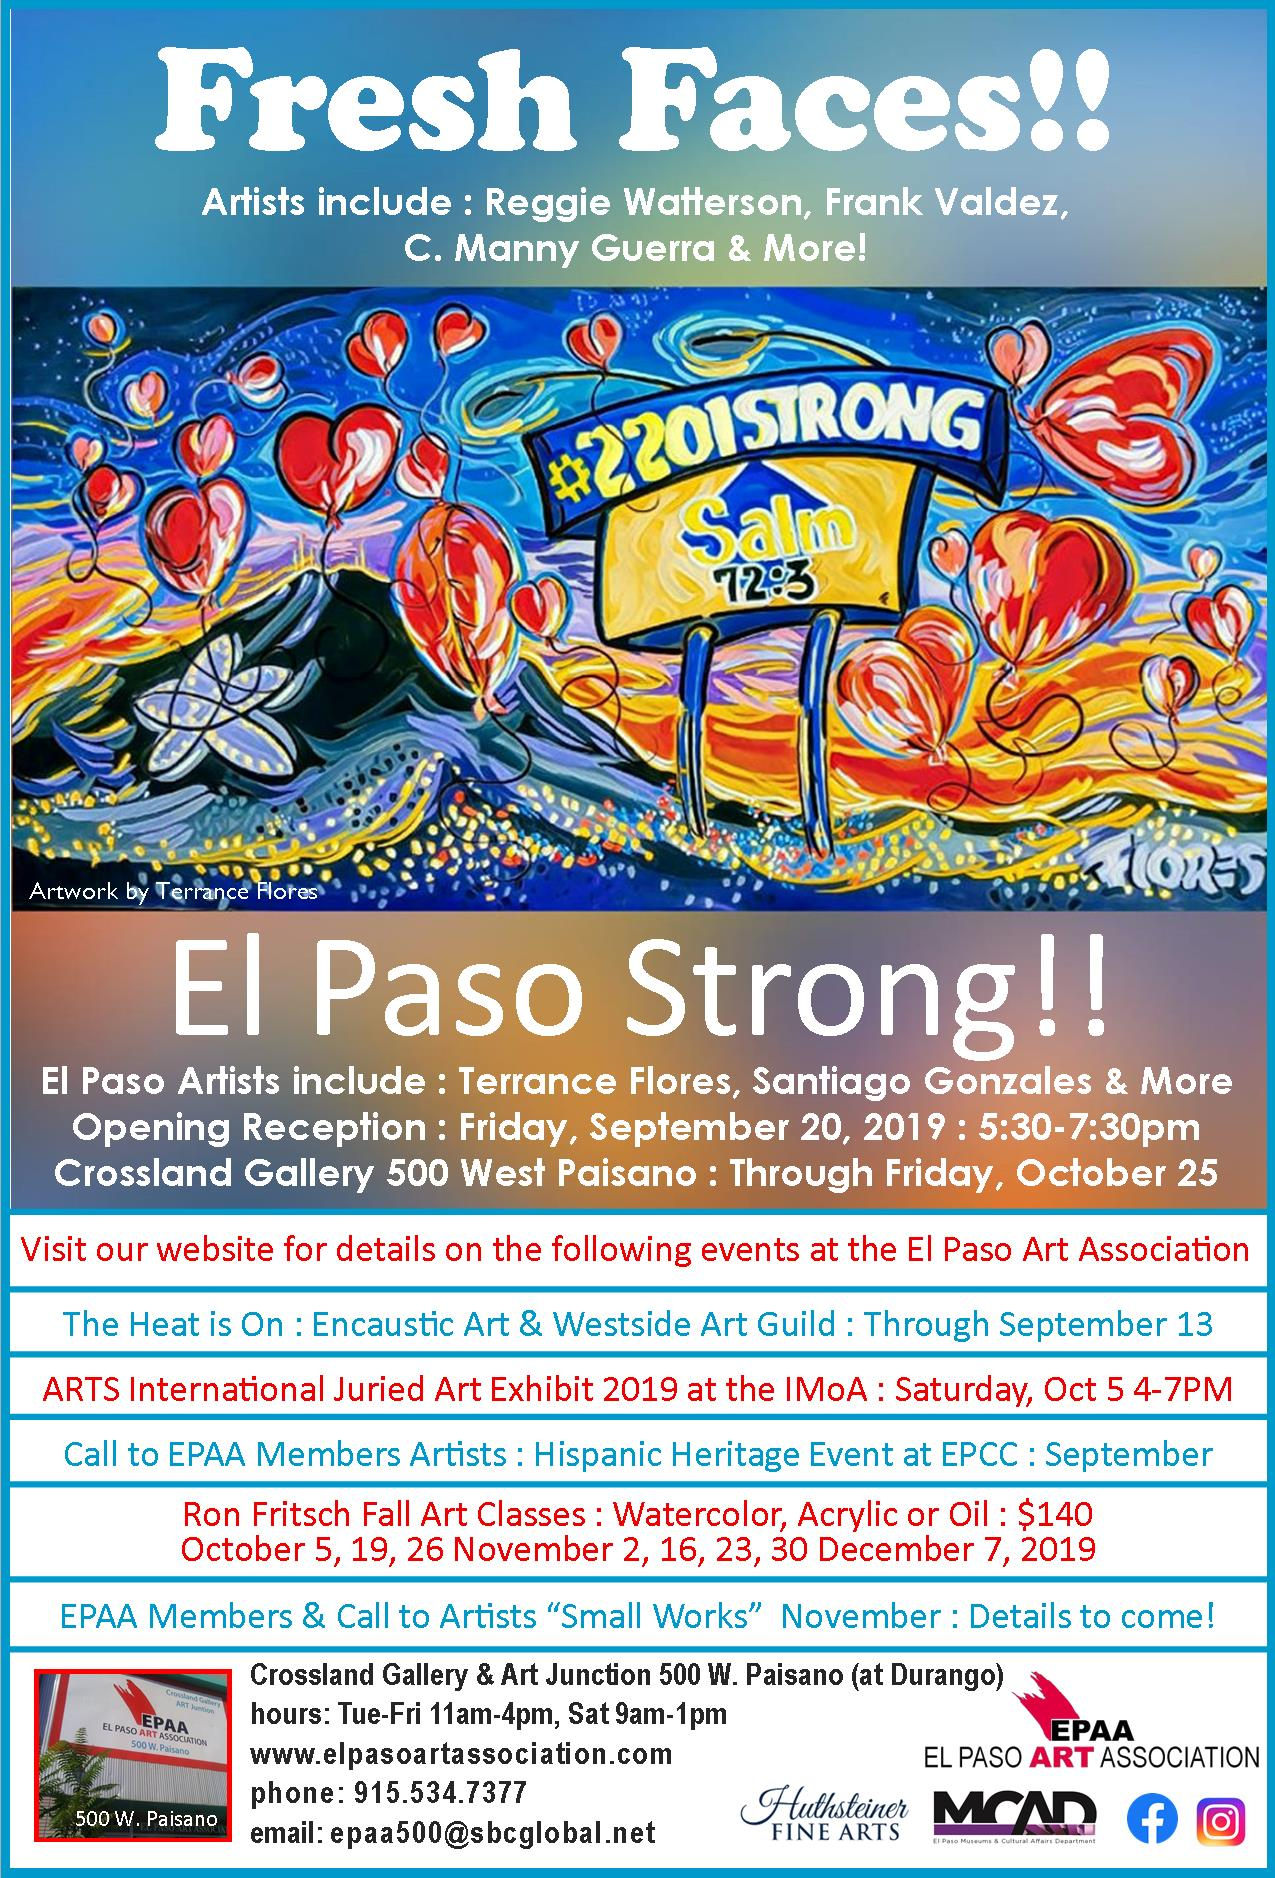 You are cordially invited    Fresh Faces — El Paso Strong!    EPAA Member's Exhibit   El Paso Artists include : Reggie Watterson, Frank Valdez, C. Manny Guerra, Terrance Flores, Santiago Gonzales & More   Opening Reception :    Friday, September 20, 2019 :    5:30-7:30 pm   Crossland Gallery  500 West Paisano :  Through Friday, October 25